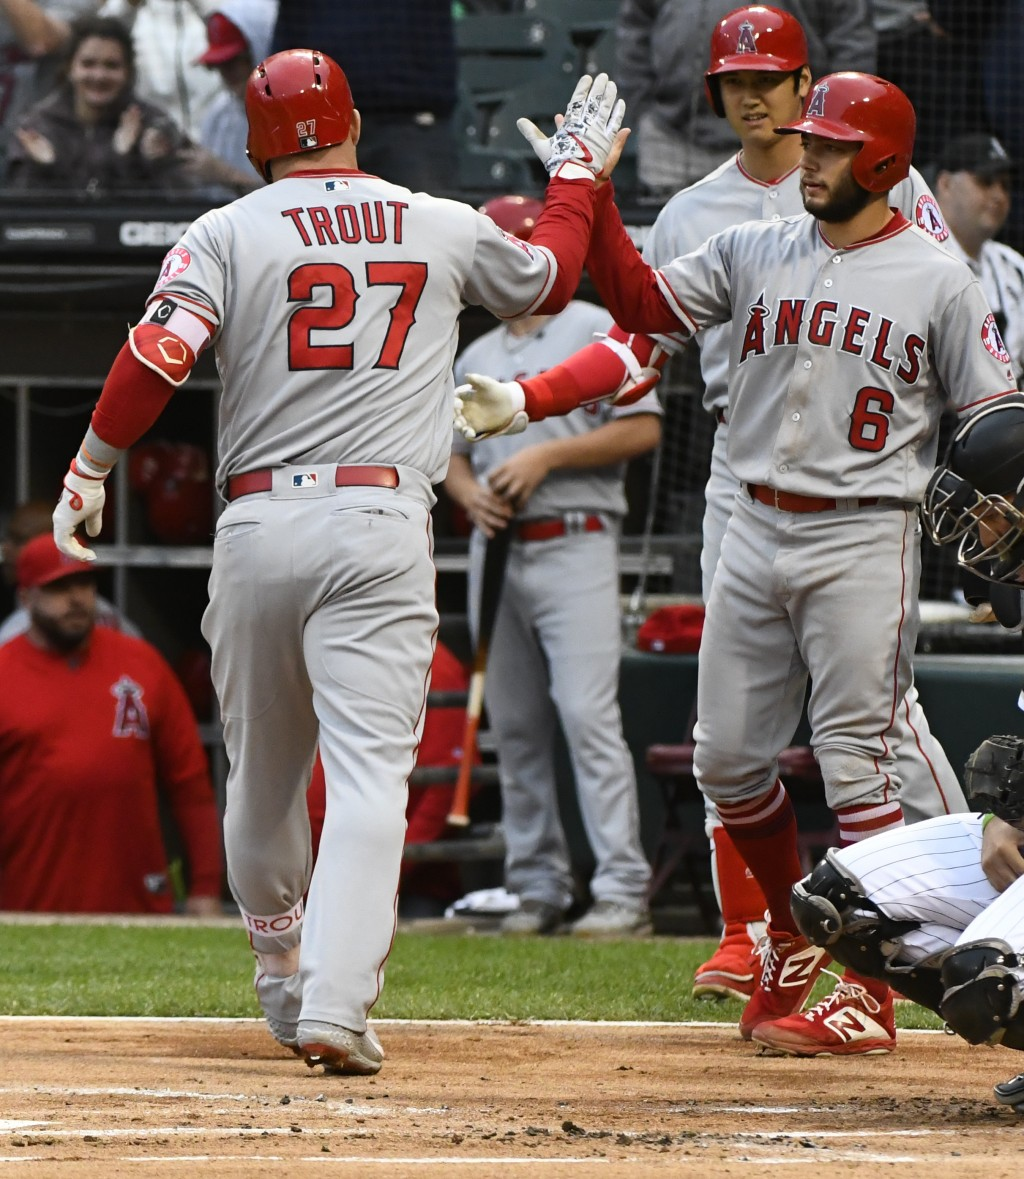 Los Angeles Angels' Mike Trout (27) high fives David Fletcher (6) after they scored on Trout's two run home run during the first inning of a baseball ...